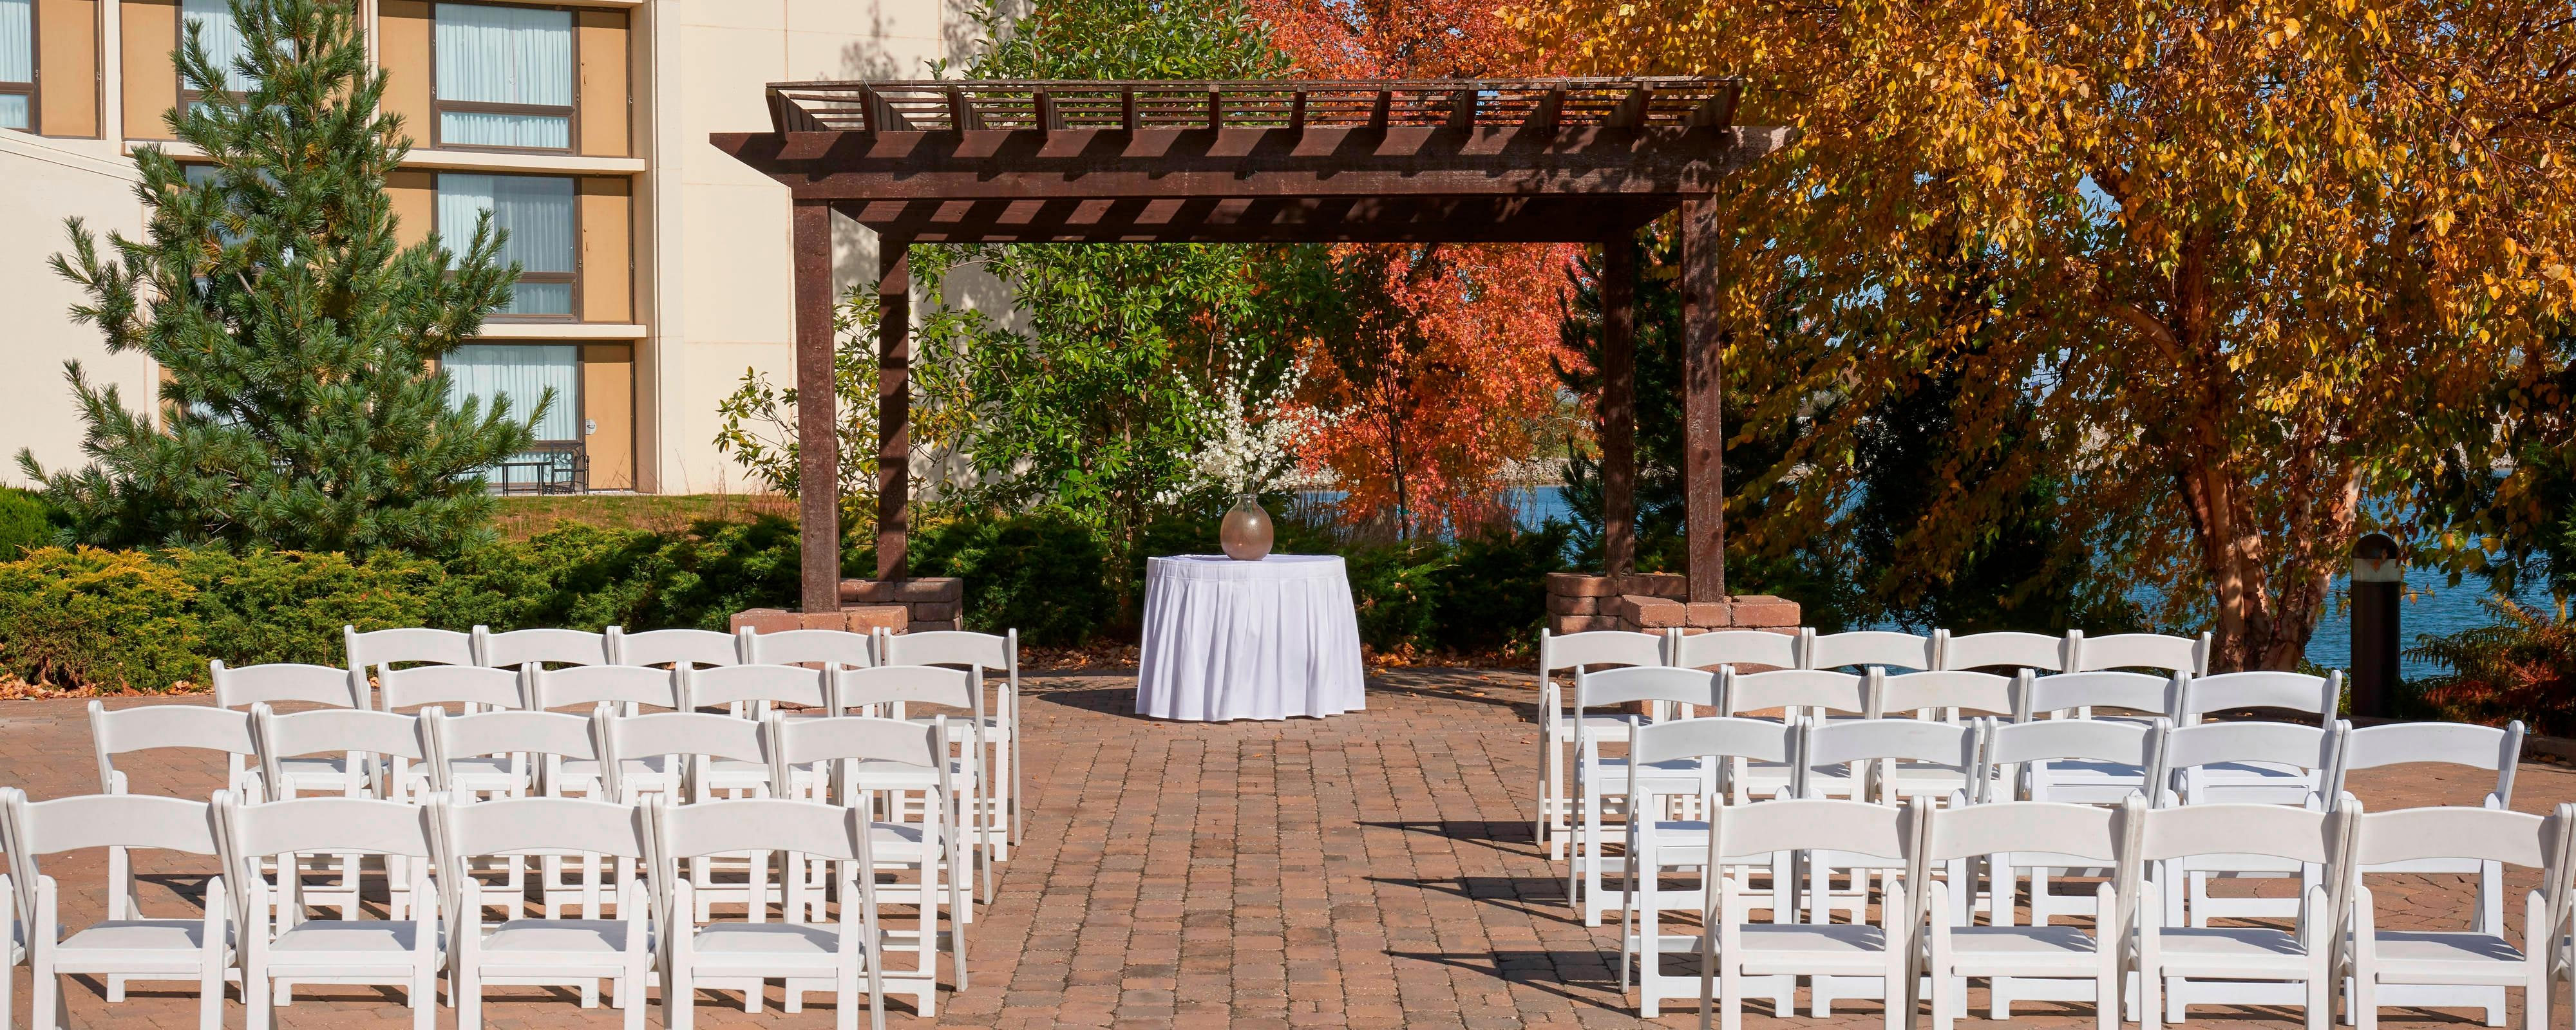 Outdoor Kc Wedding Venues Kansas City Airport Marriott